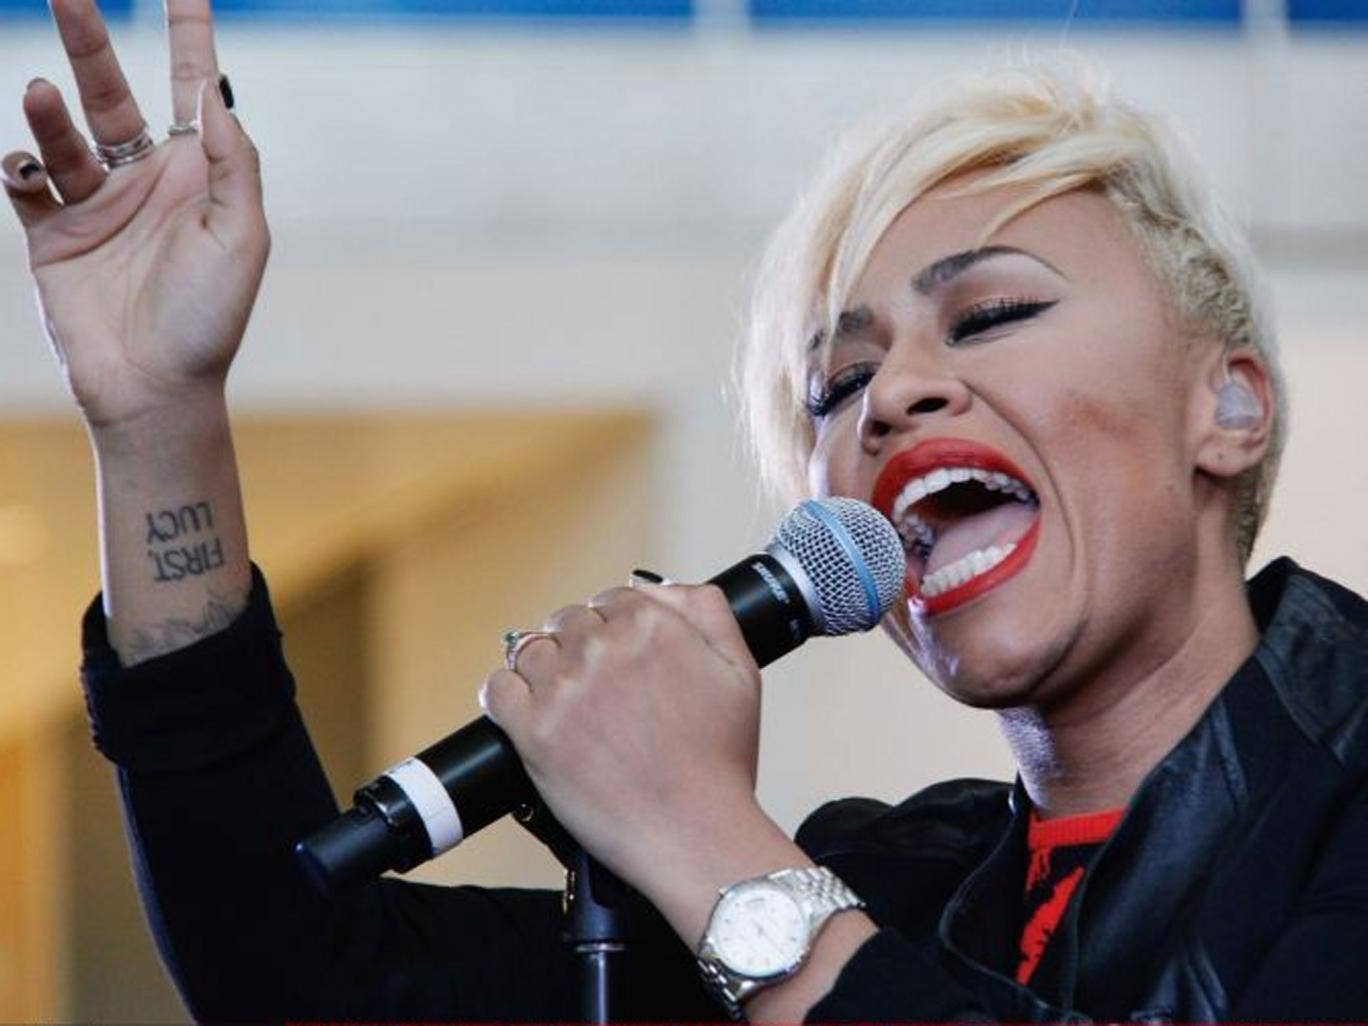 """Emeli Sande's """"Our Version of Events"""" became the debut album to spend more consecutive weeks in the top 10 than any other"""